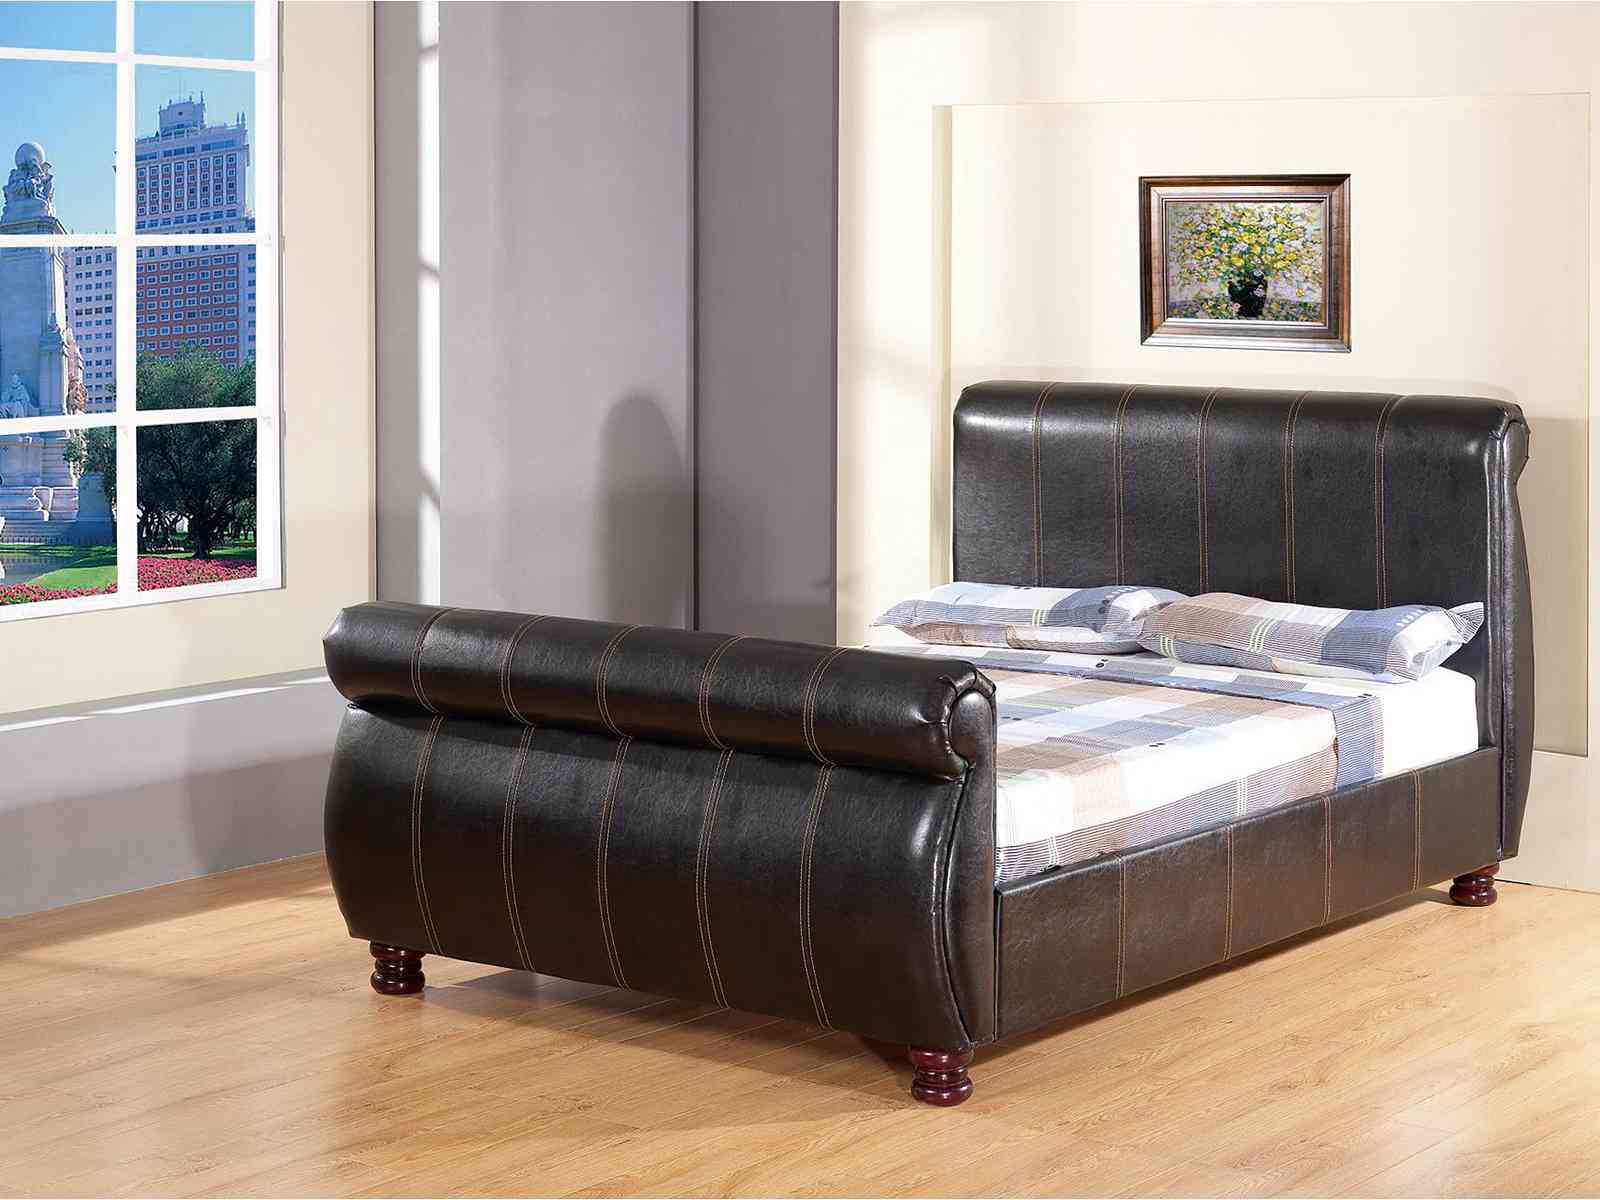 Gfw the furniture warehouse chicago sleigh bedstead for G furniture chicago